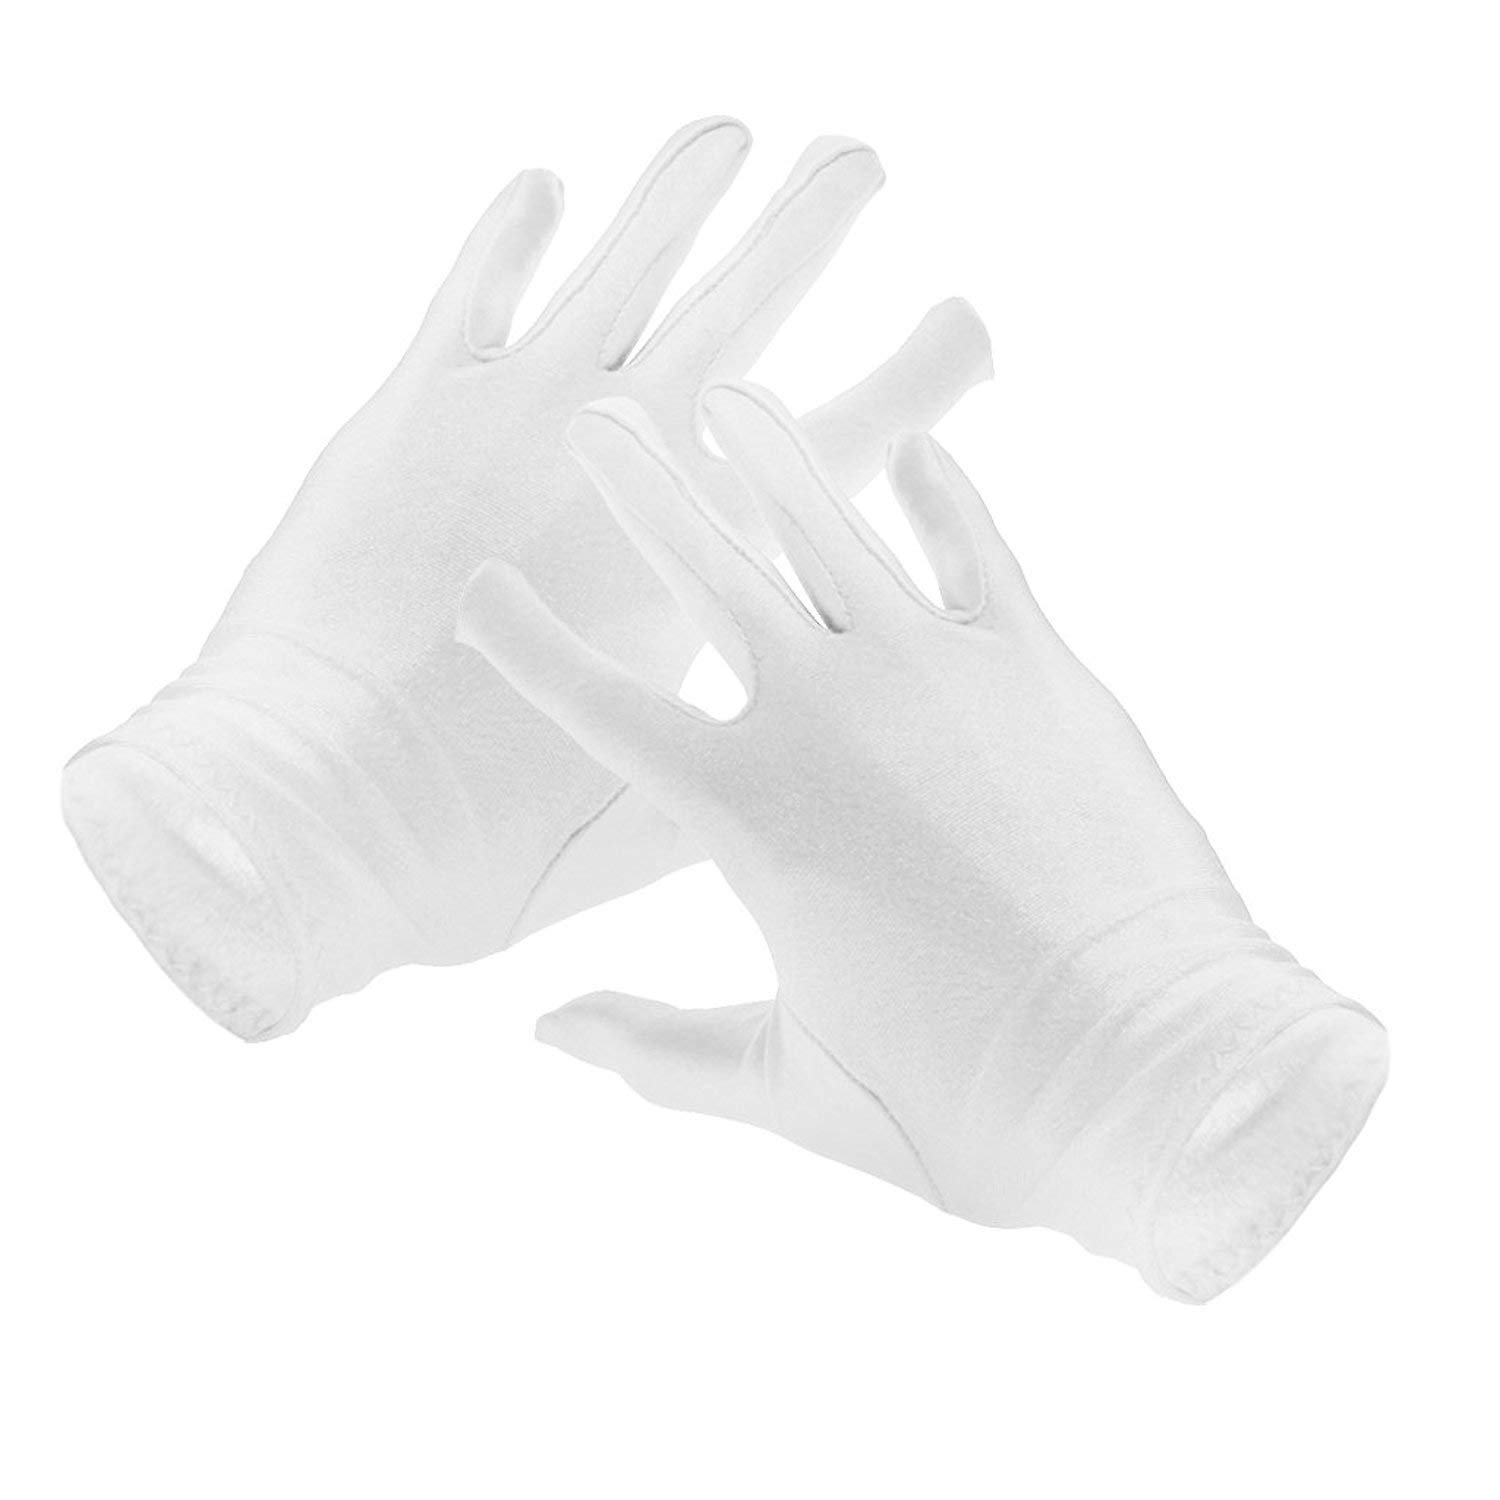 Potelin White Soft Cotton Ceremonial Gloves Unisex Serving Waiter Driver Glove Work Gloves Breathable Absorbent Inspection Gloves Jewelry Gloves